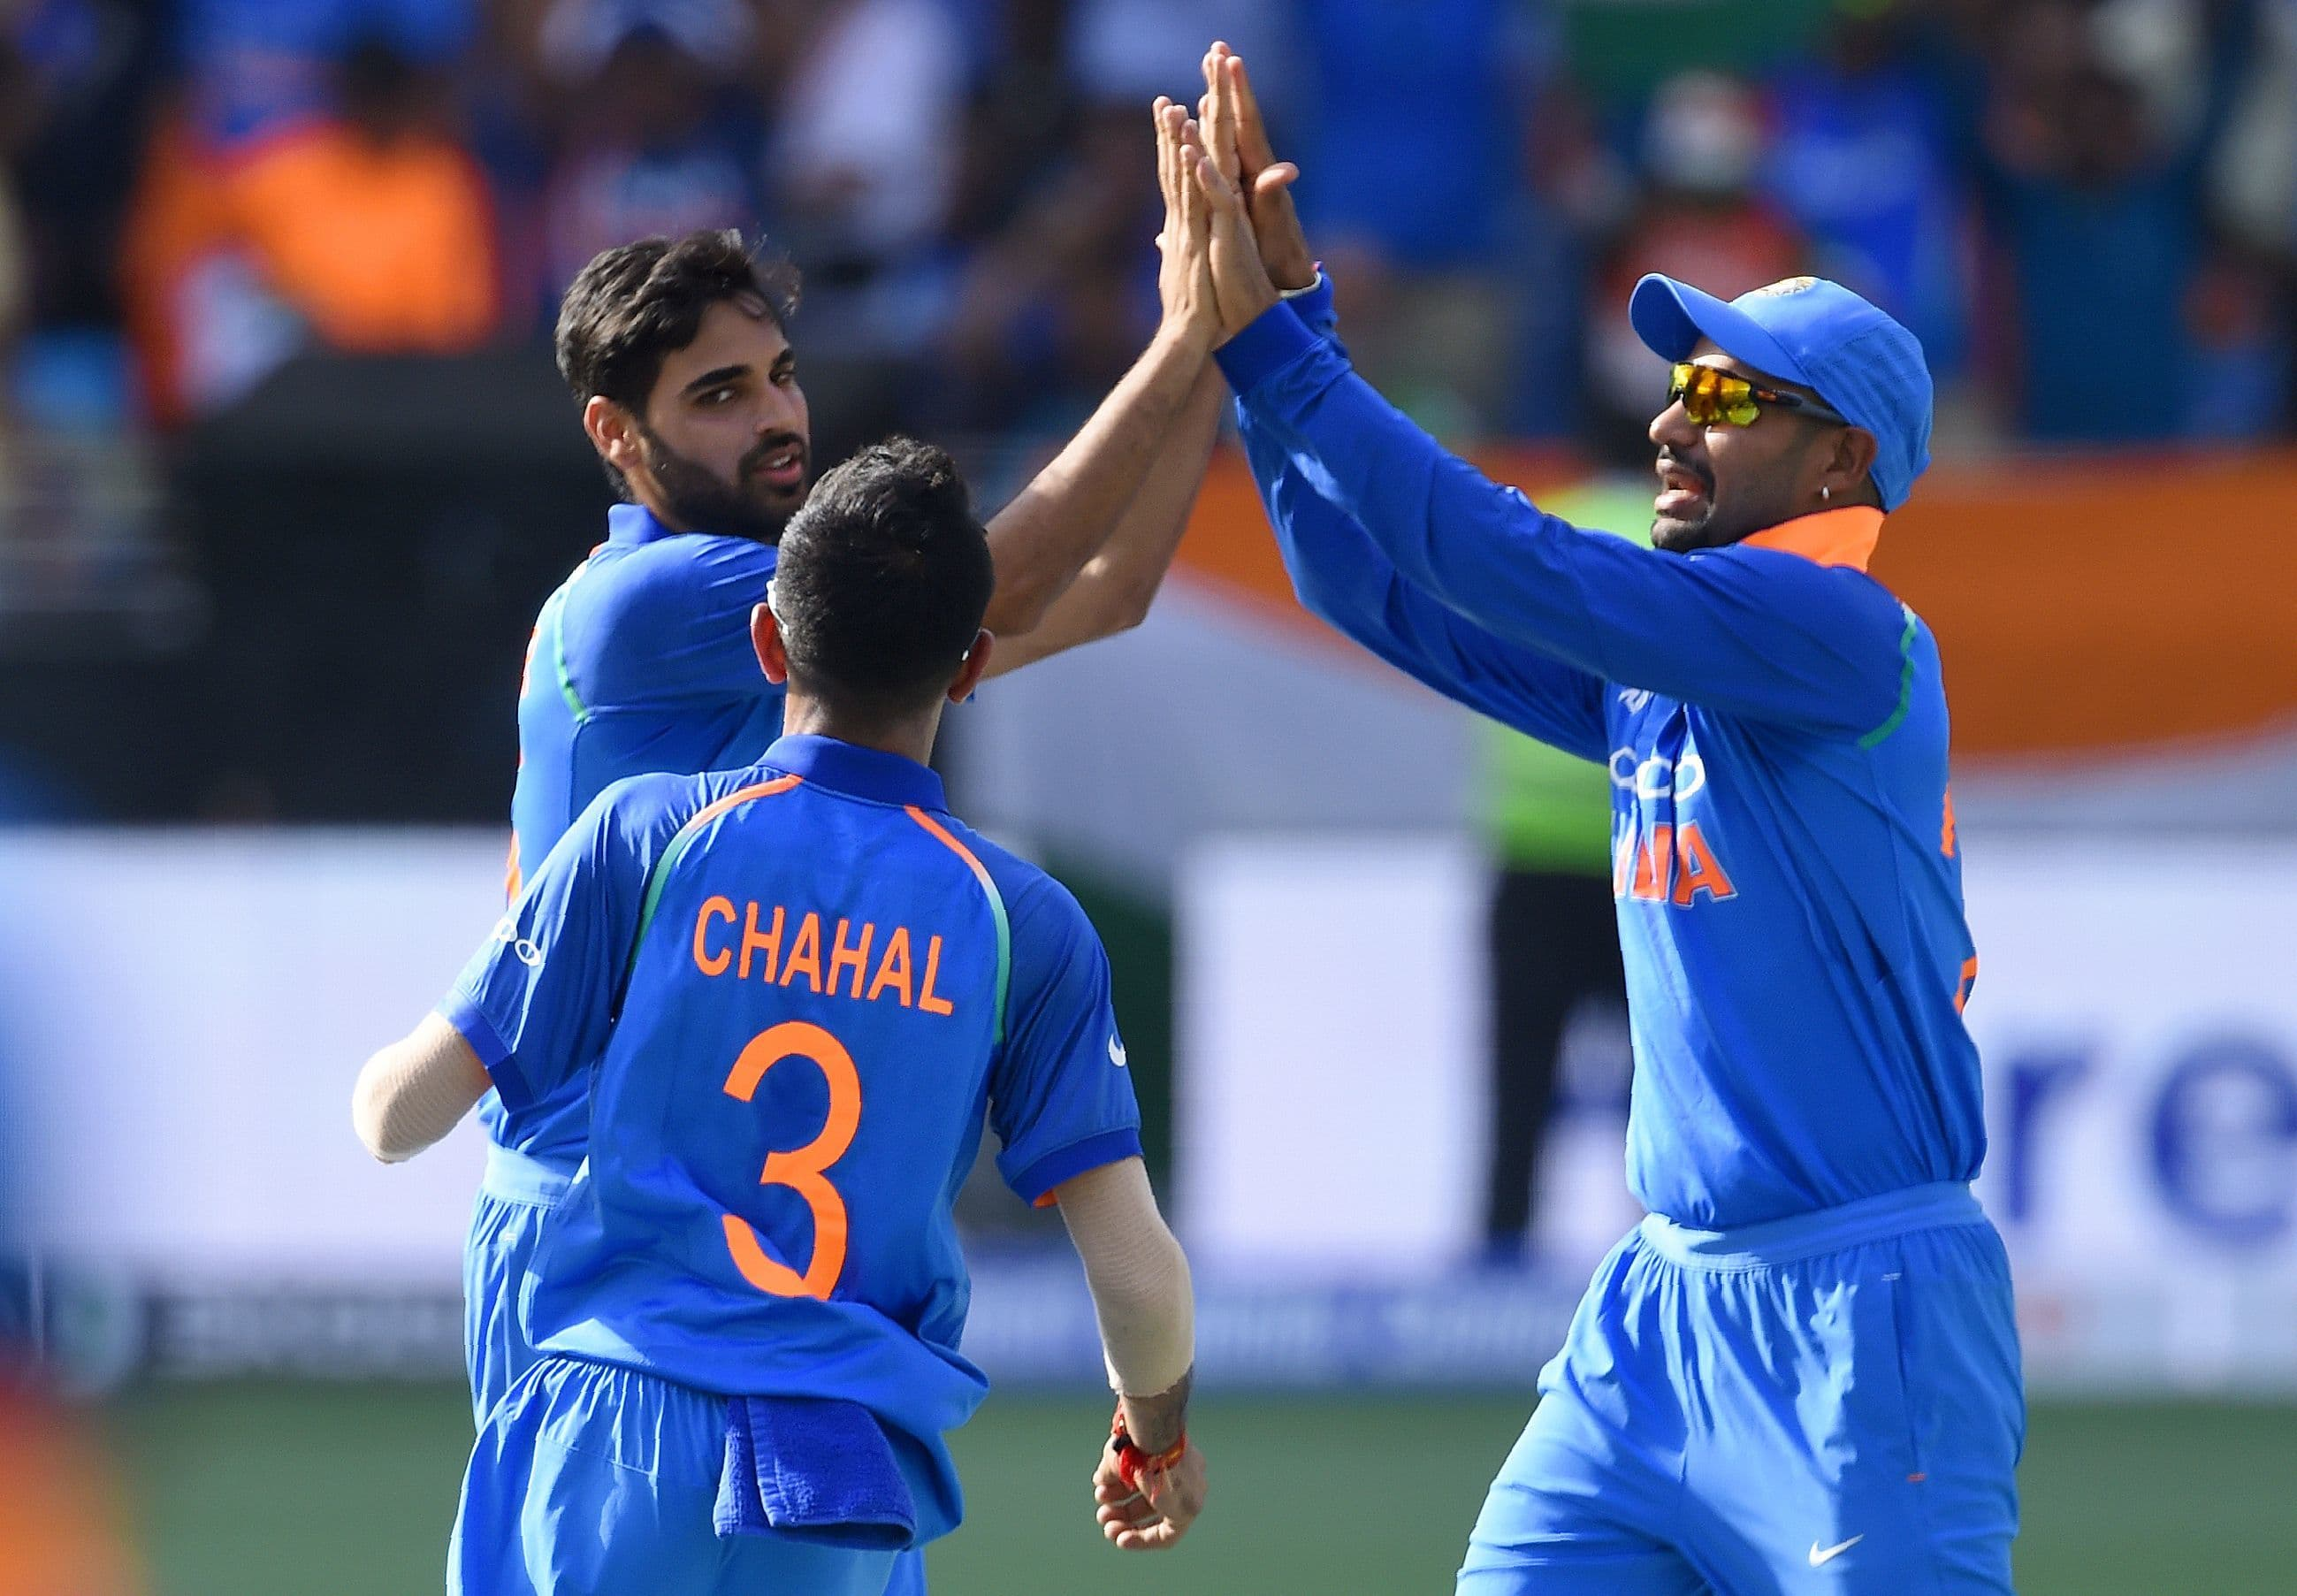 Indian cricketer Bhuvneshwar Kumar (L) celebrates with teammates after he dismissed Pakistan batsman Imam-ul-Haq. —AFP